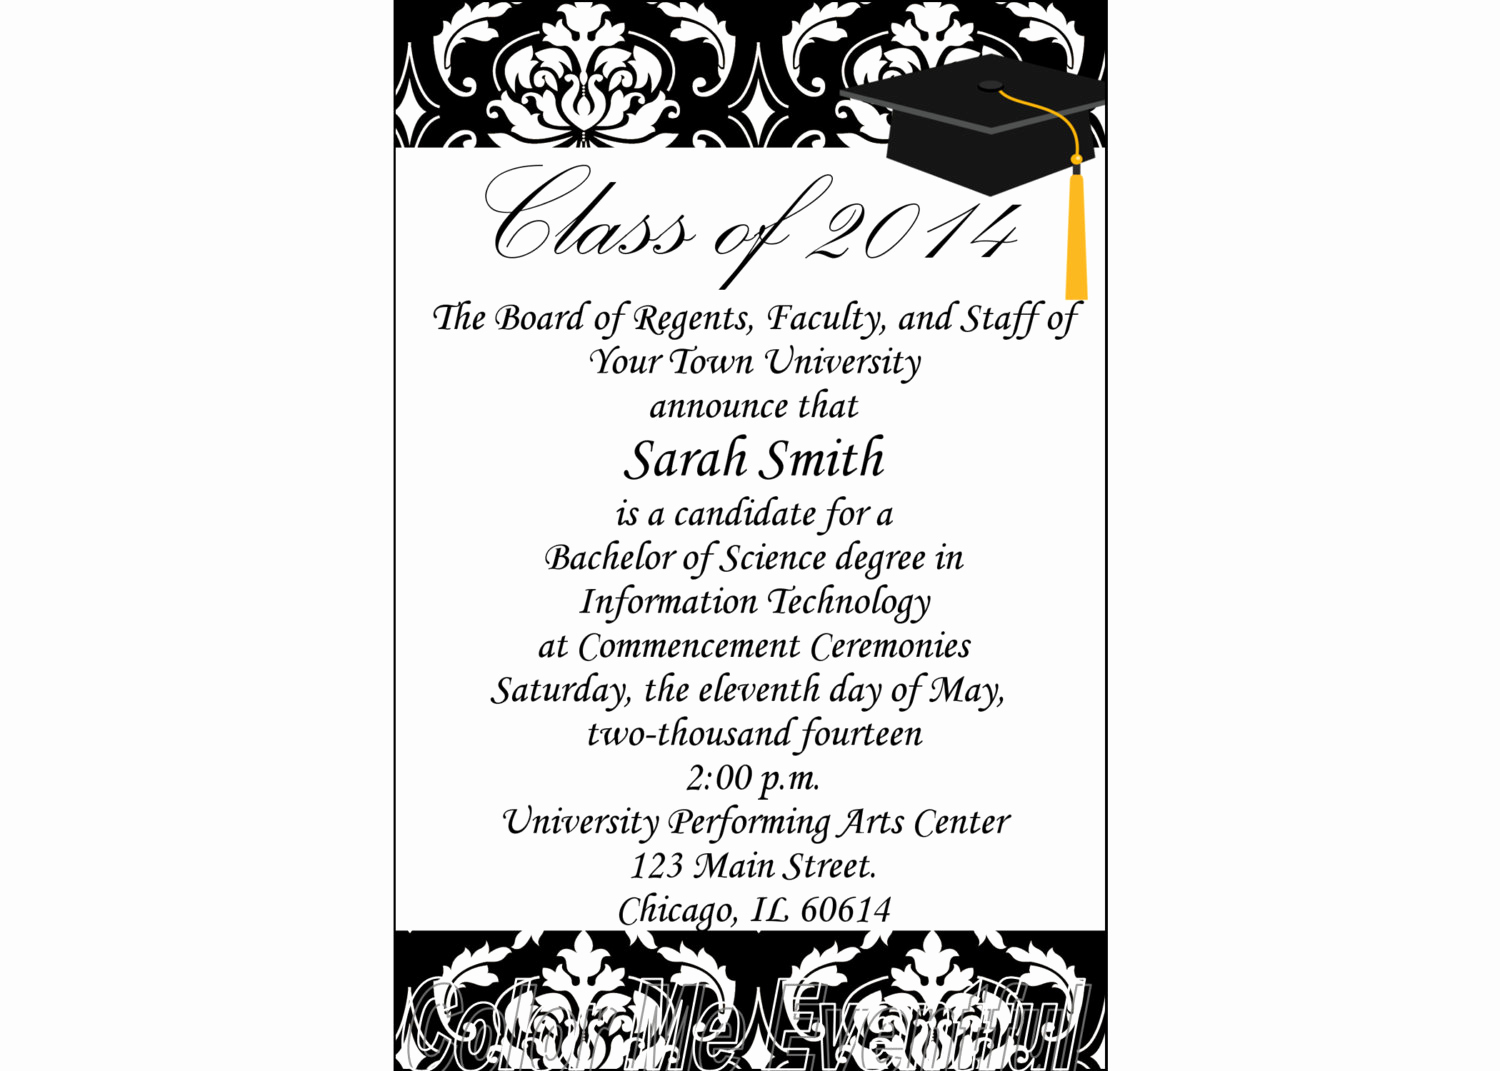 College Graduation Invitation Wording Beautiful Items Similar to College Graduation Announcement